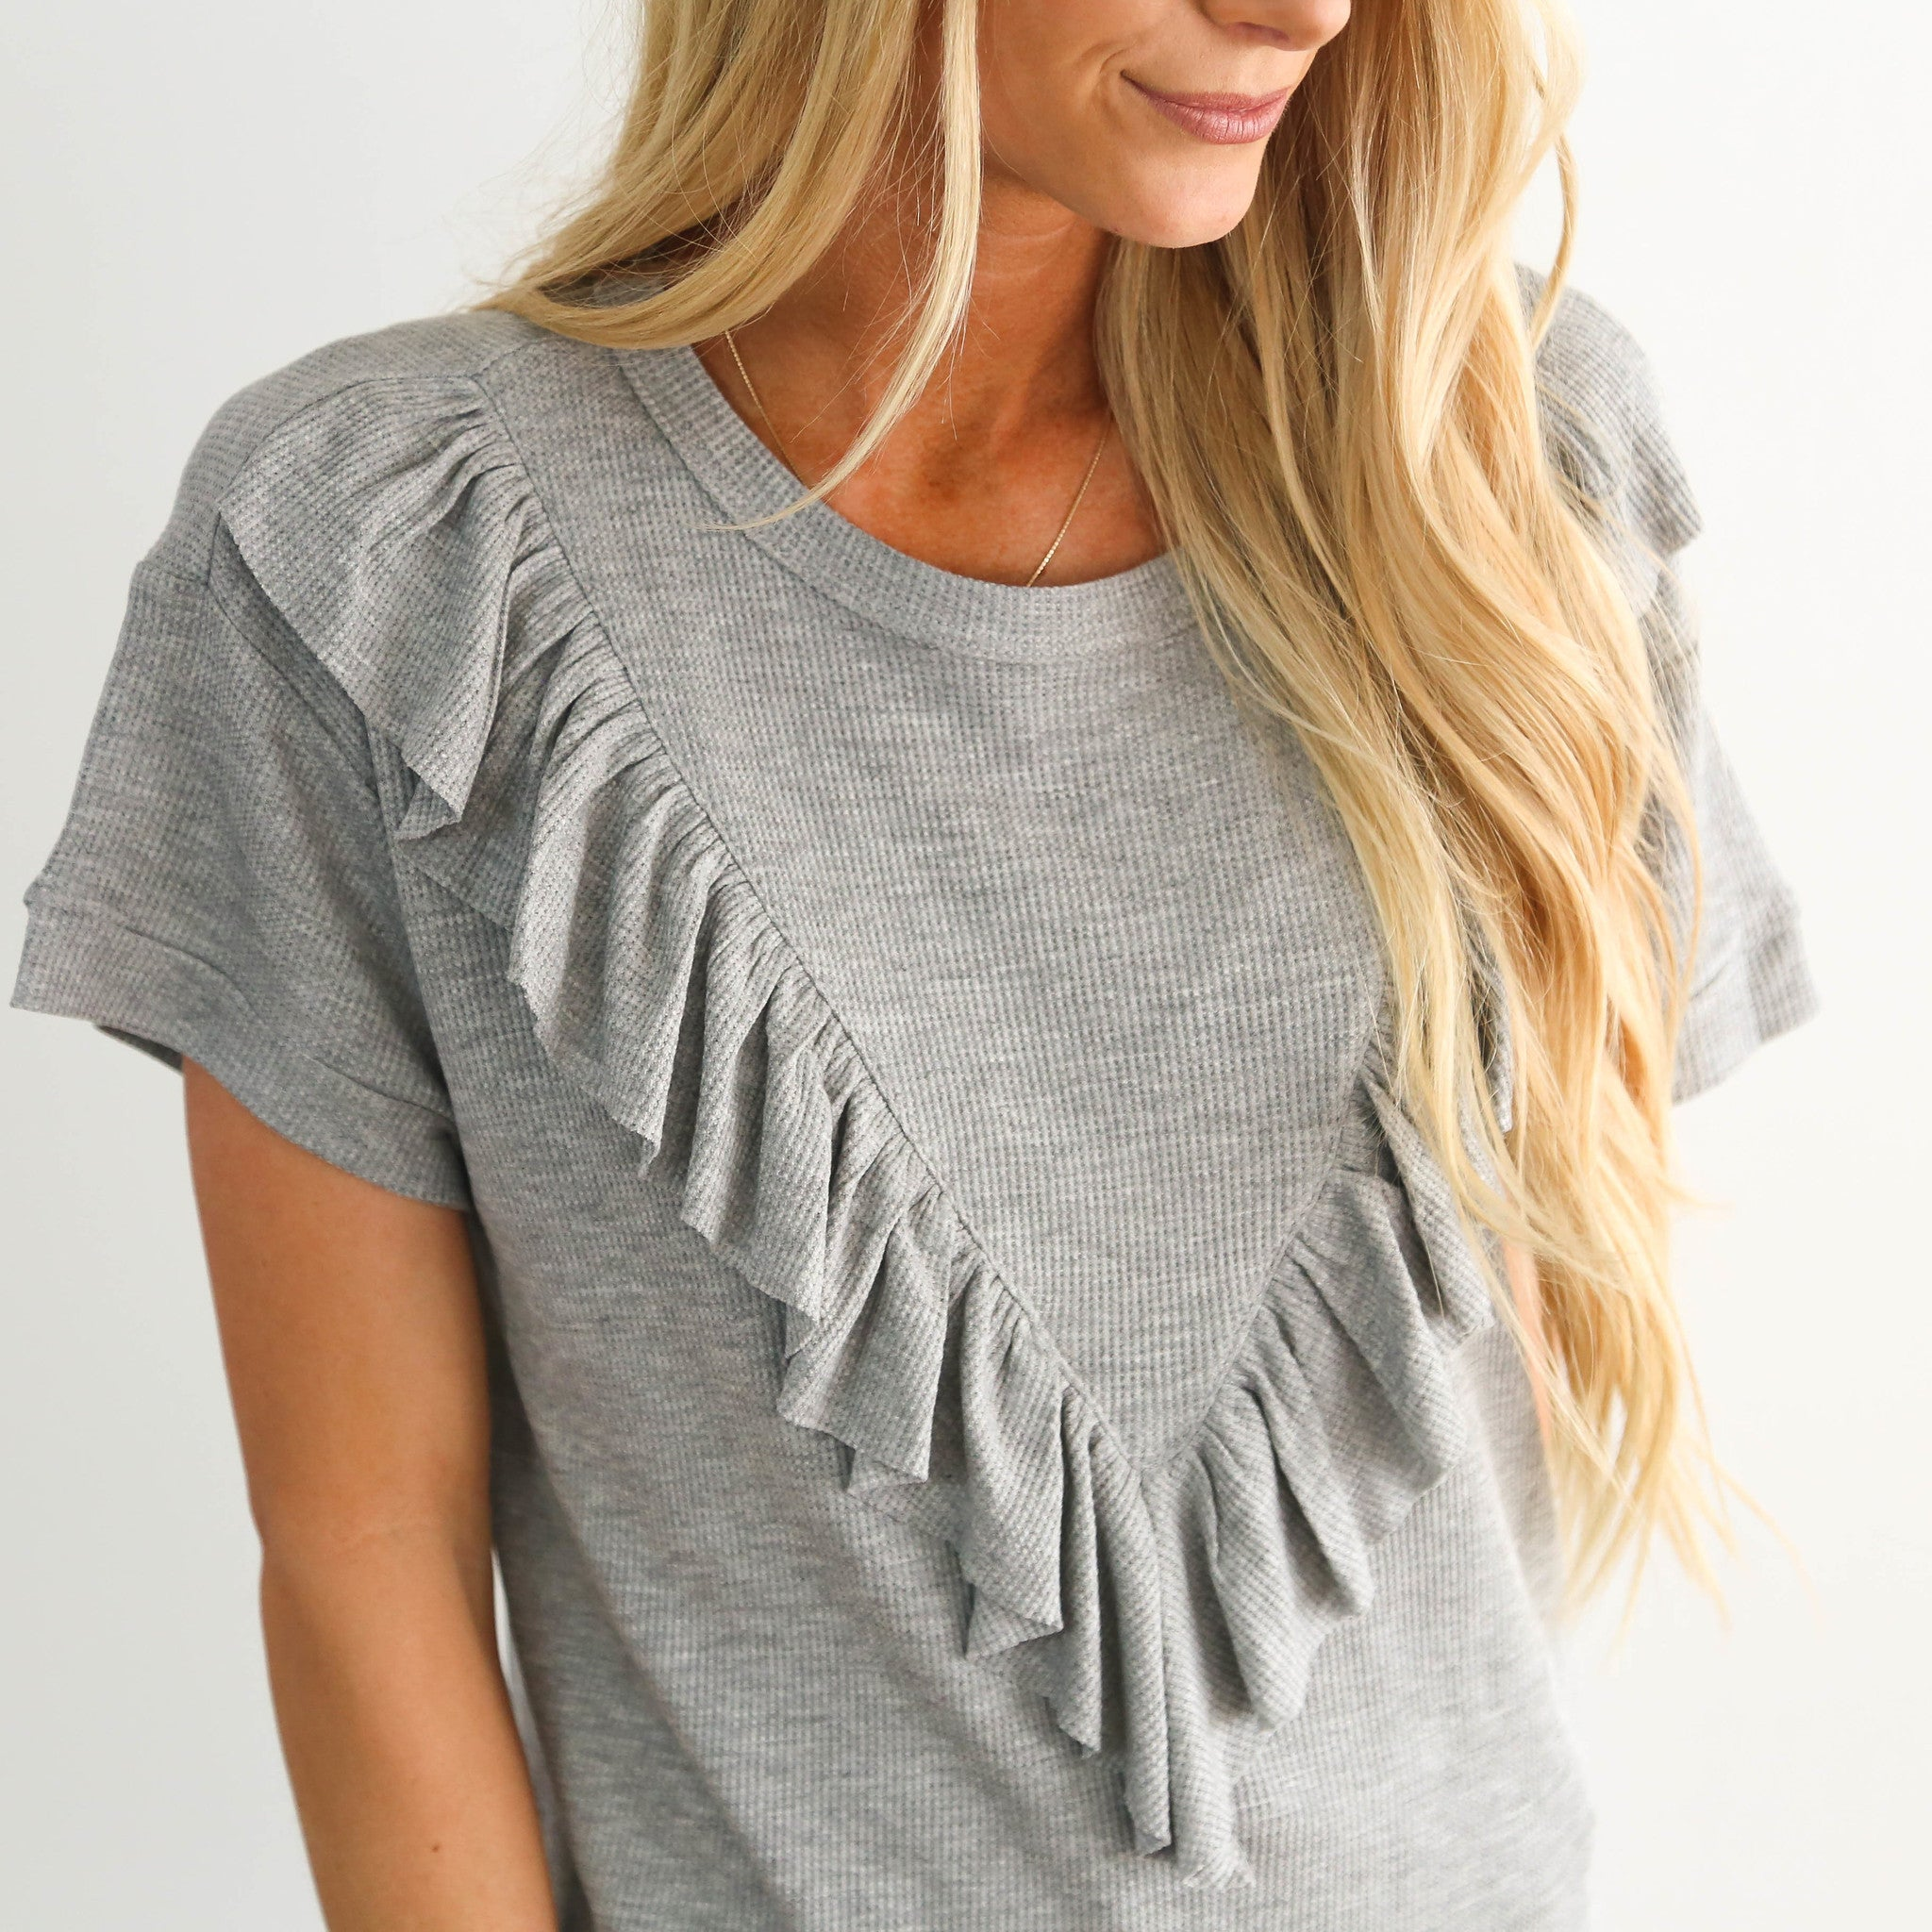 S & Co. Renee Ruffle Top